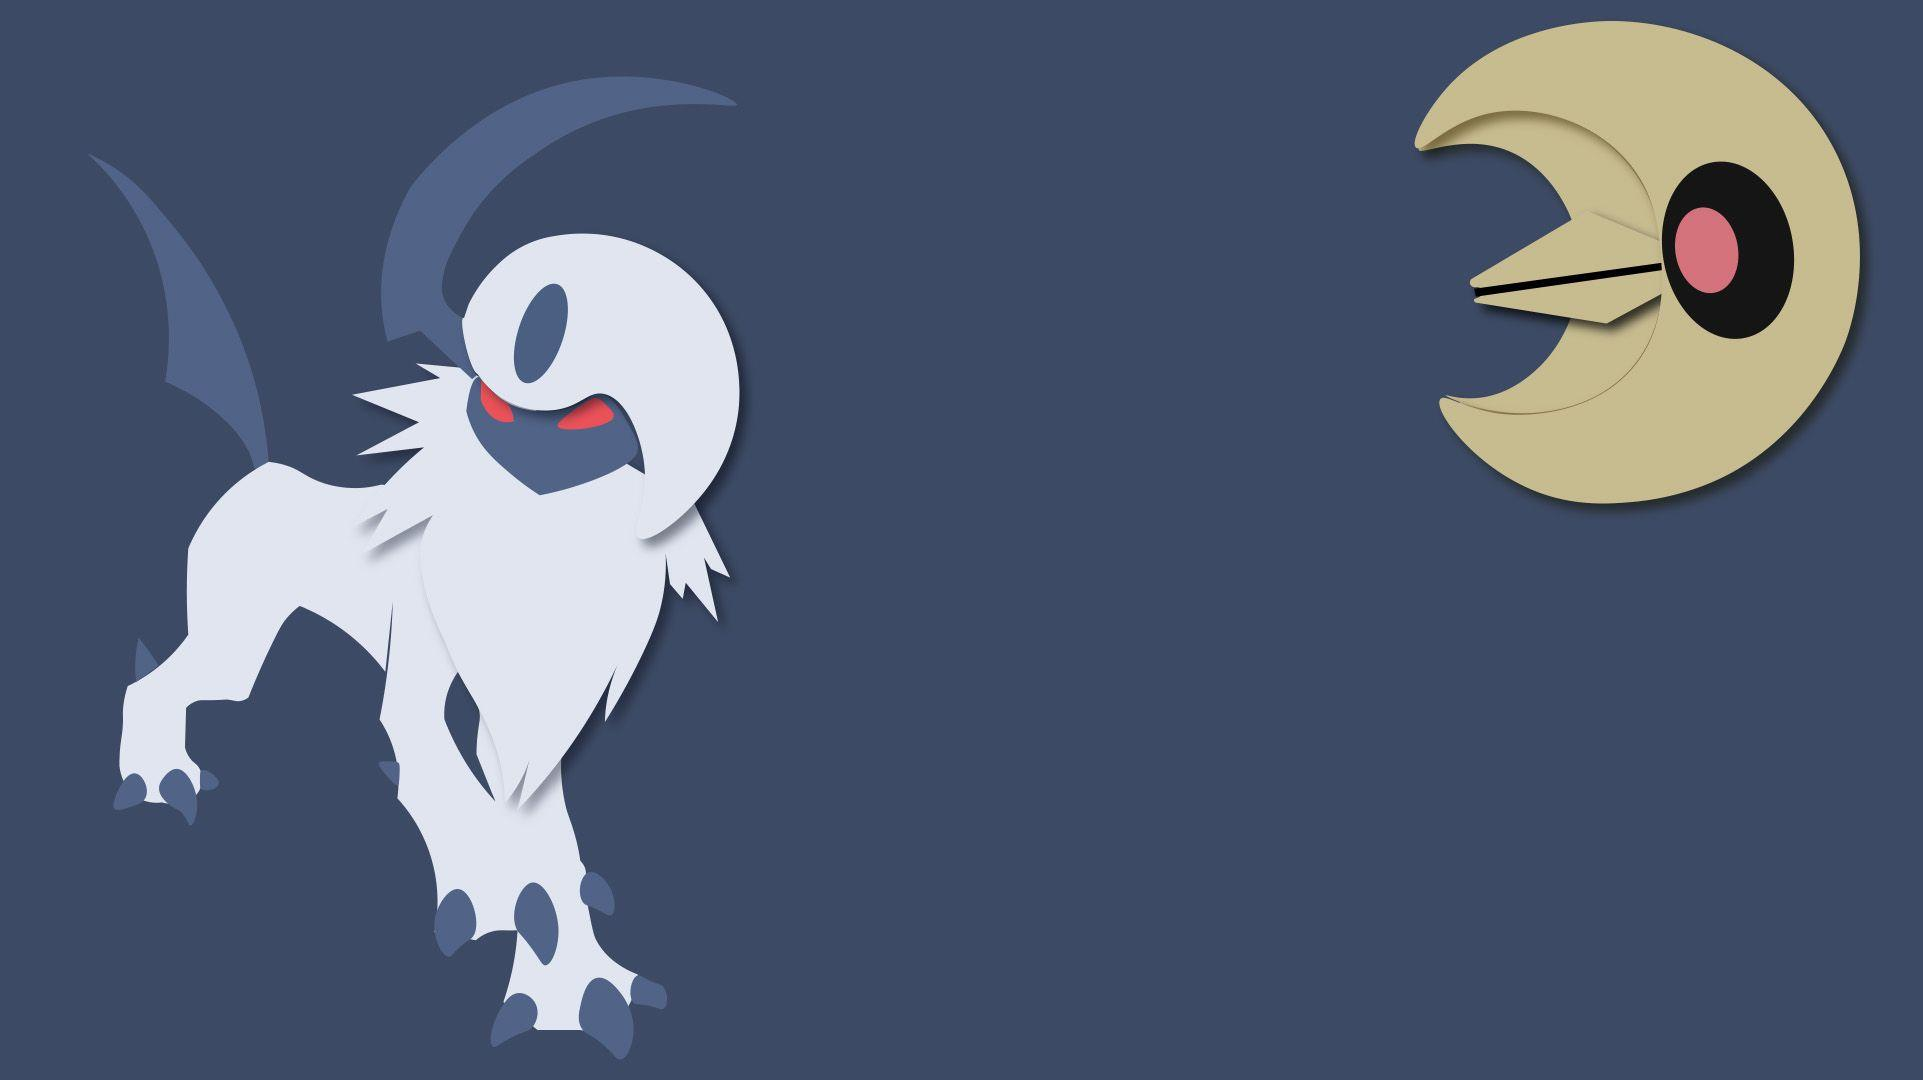 Absol Minimalist Backgrounds